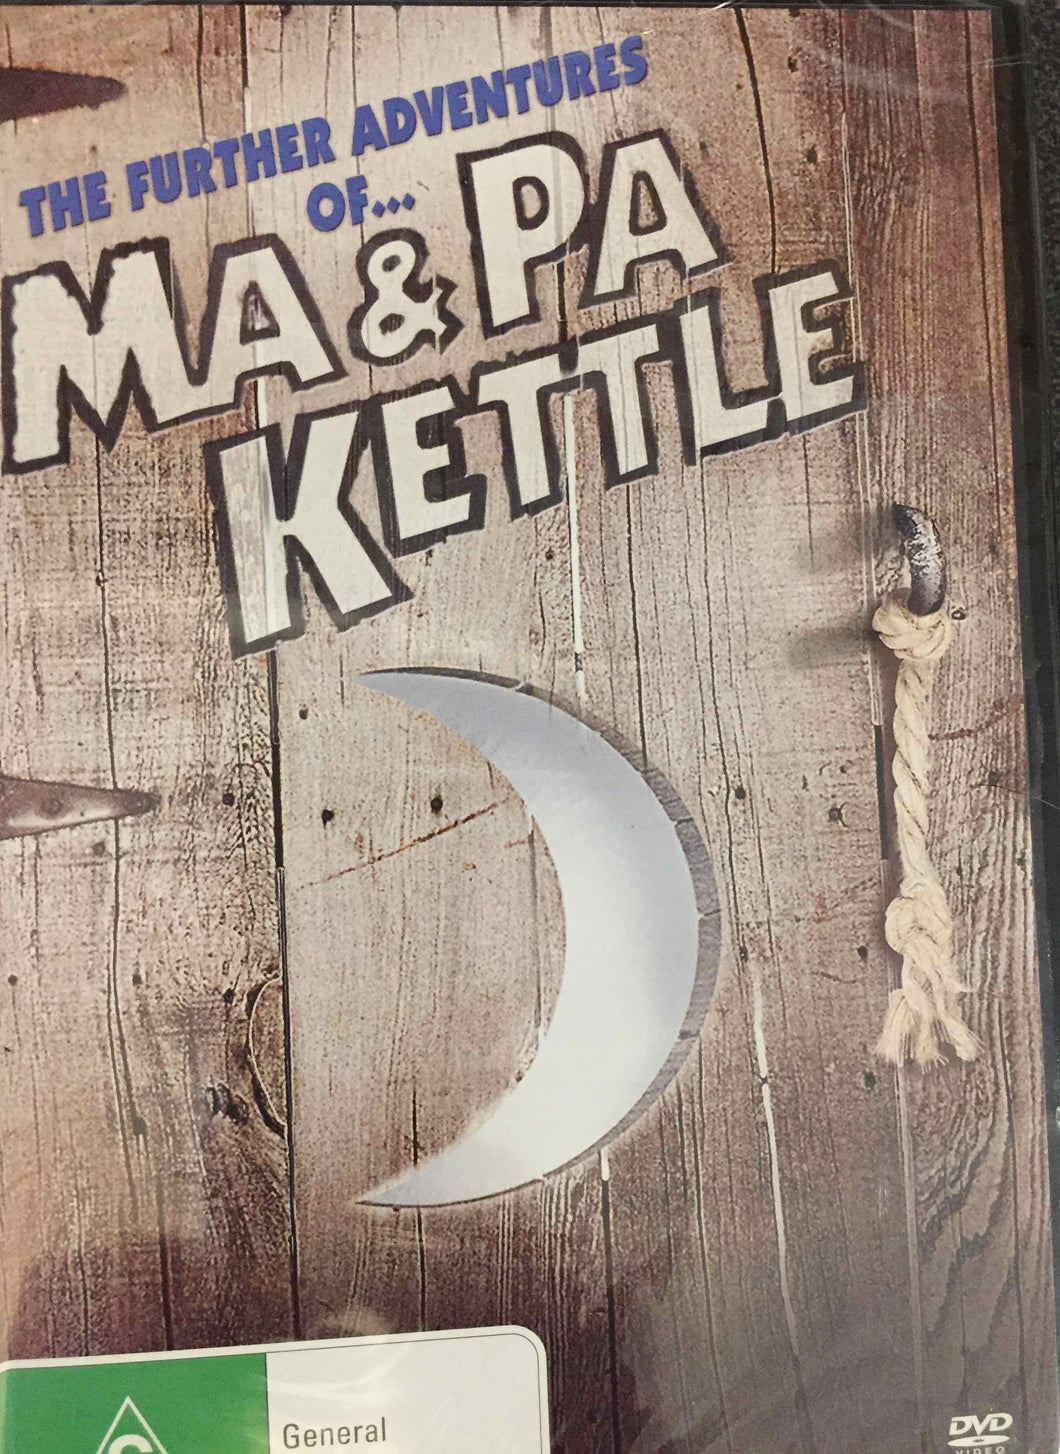 MA & PA KETTLE FURTHER ADVENTURES OF